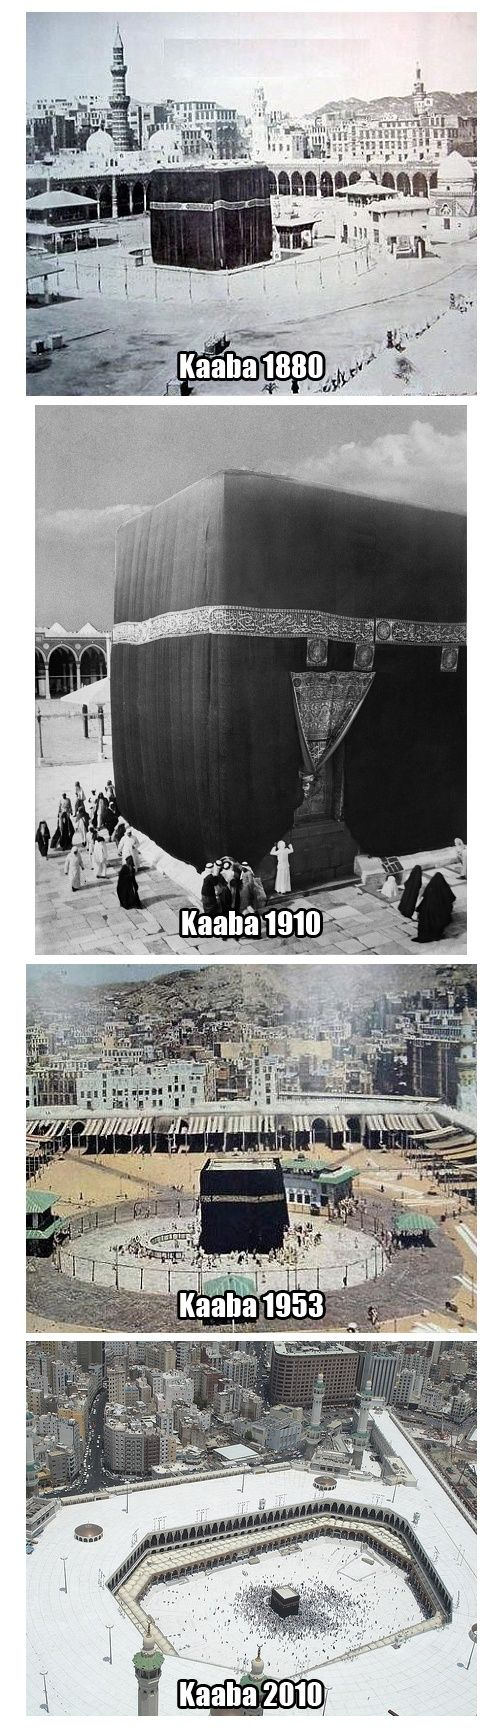 #Kaaba Timeline. May we all go there someday, Insha-Allah :)